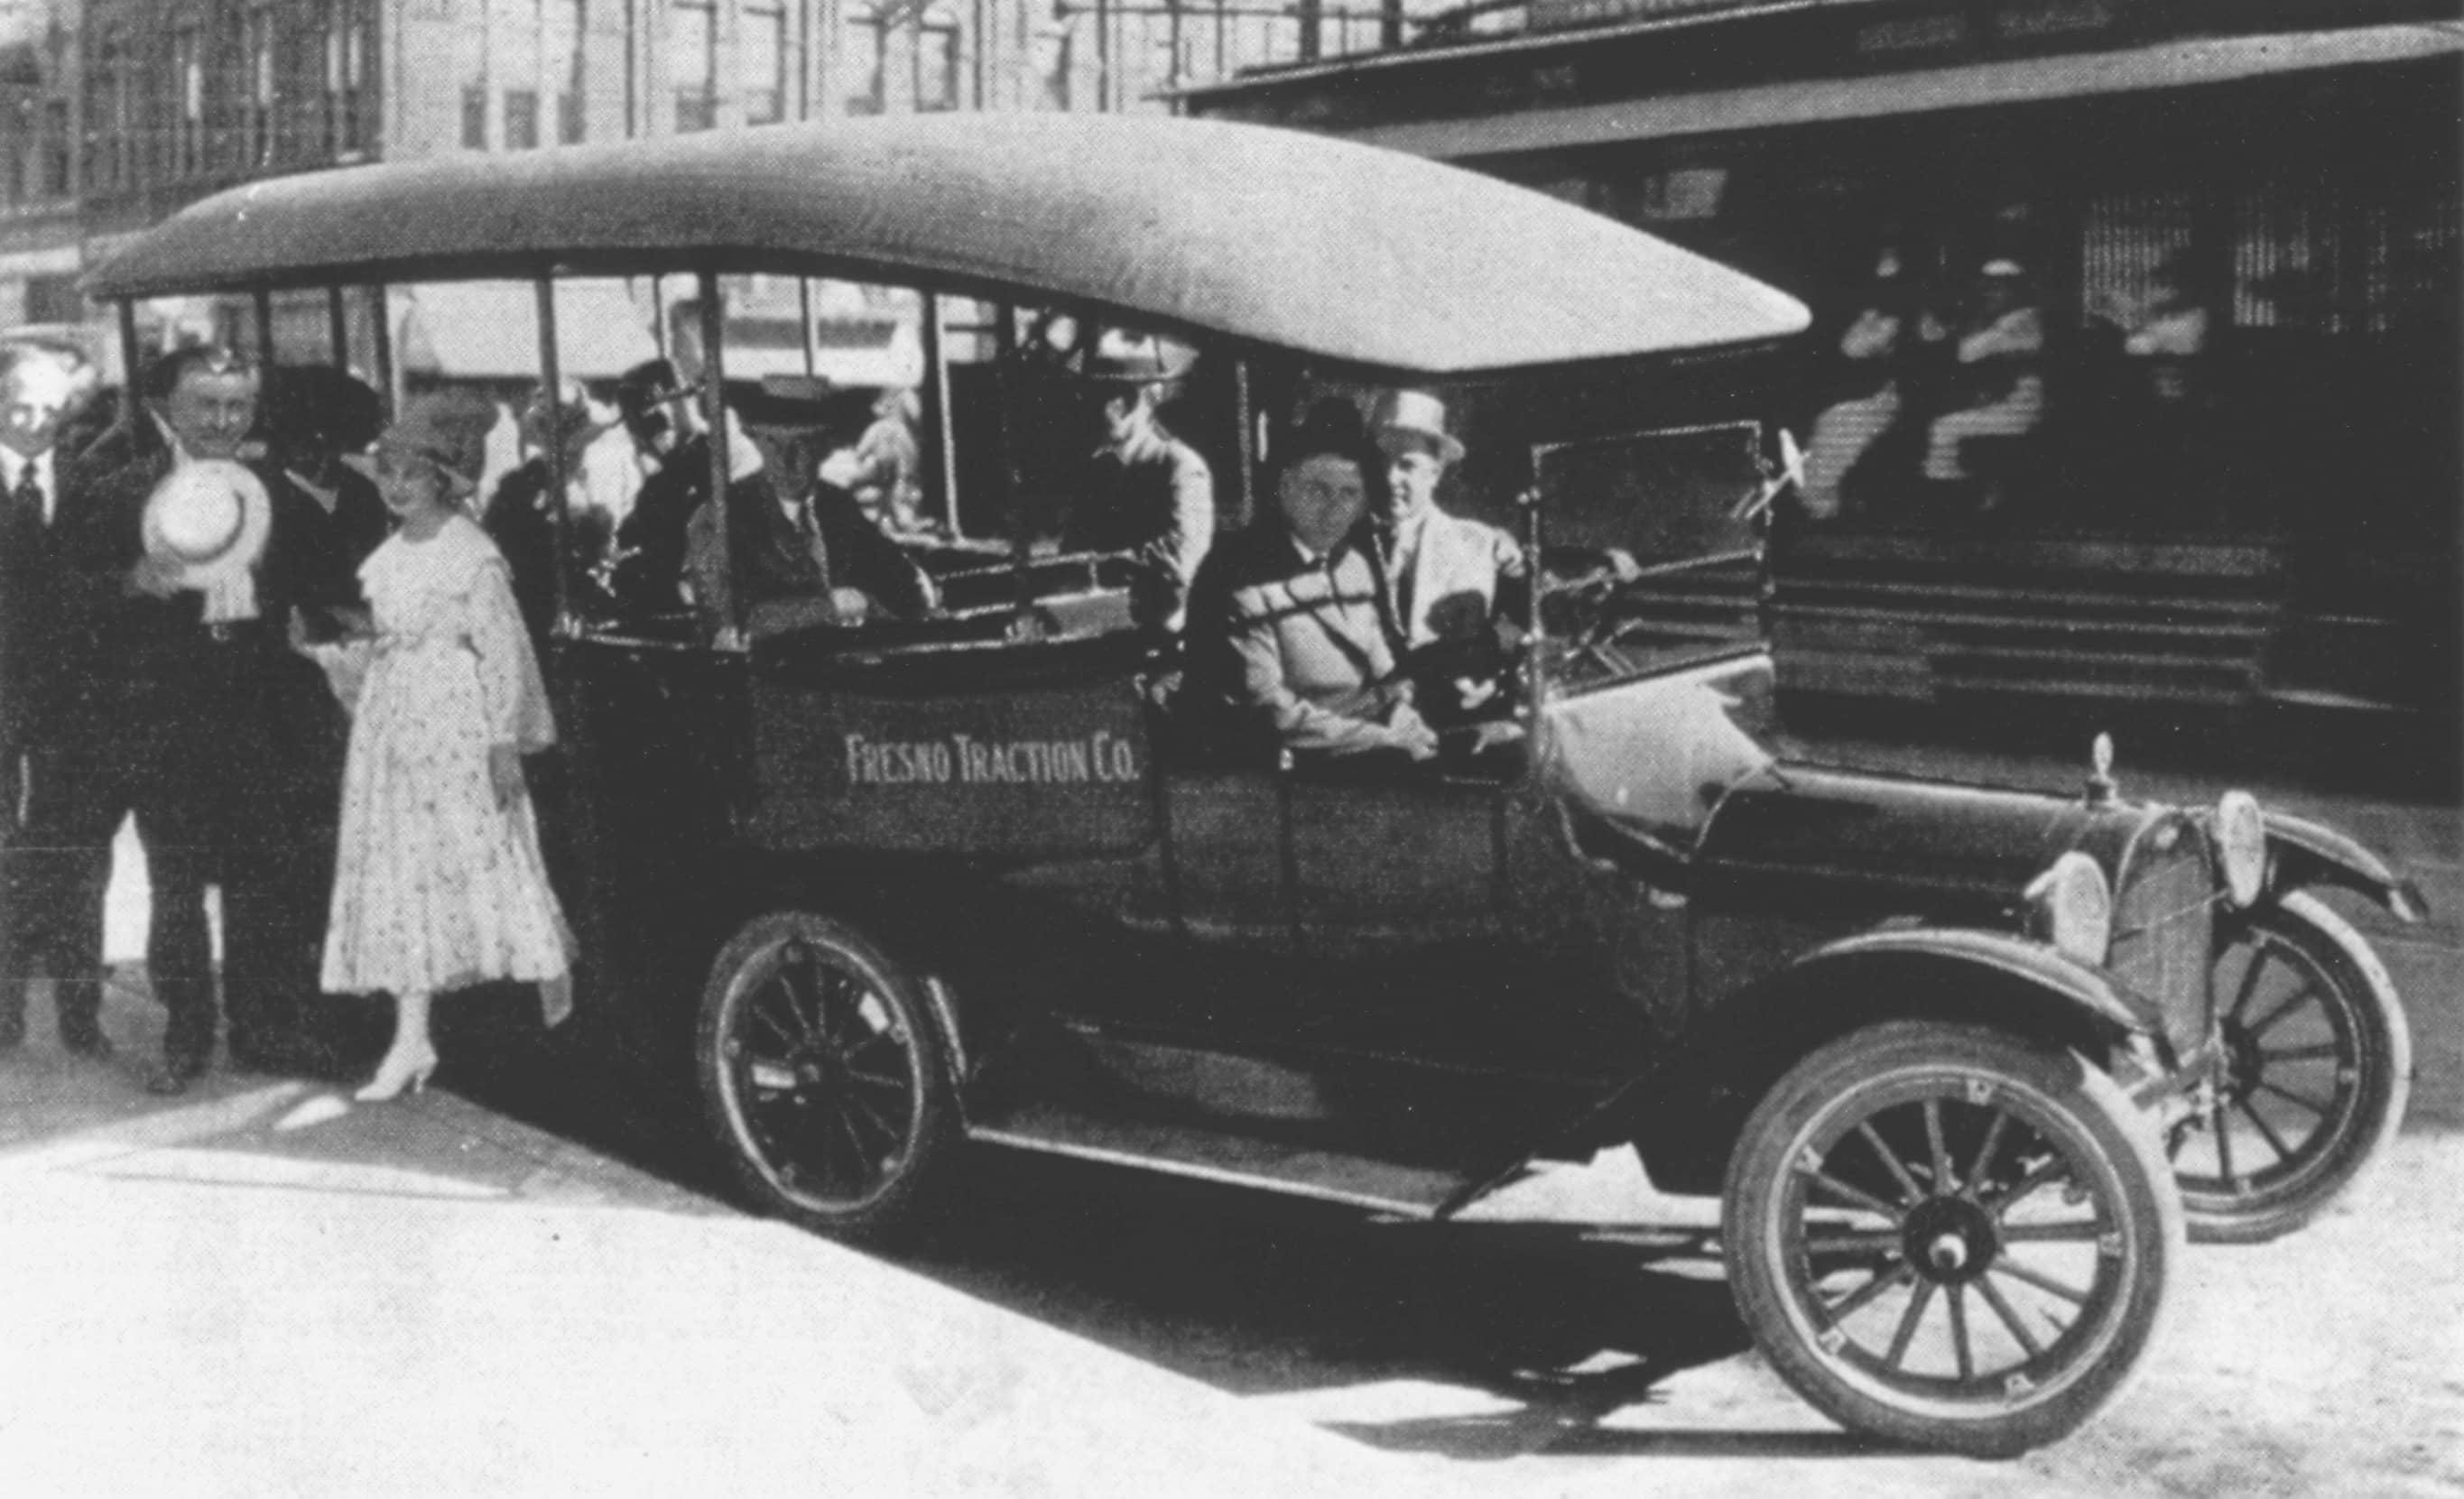 Jitney Historic Car with People